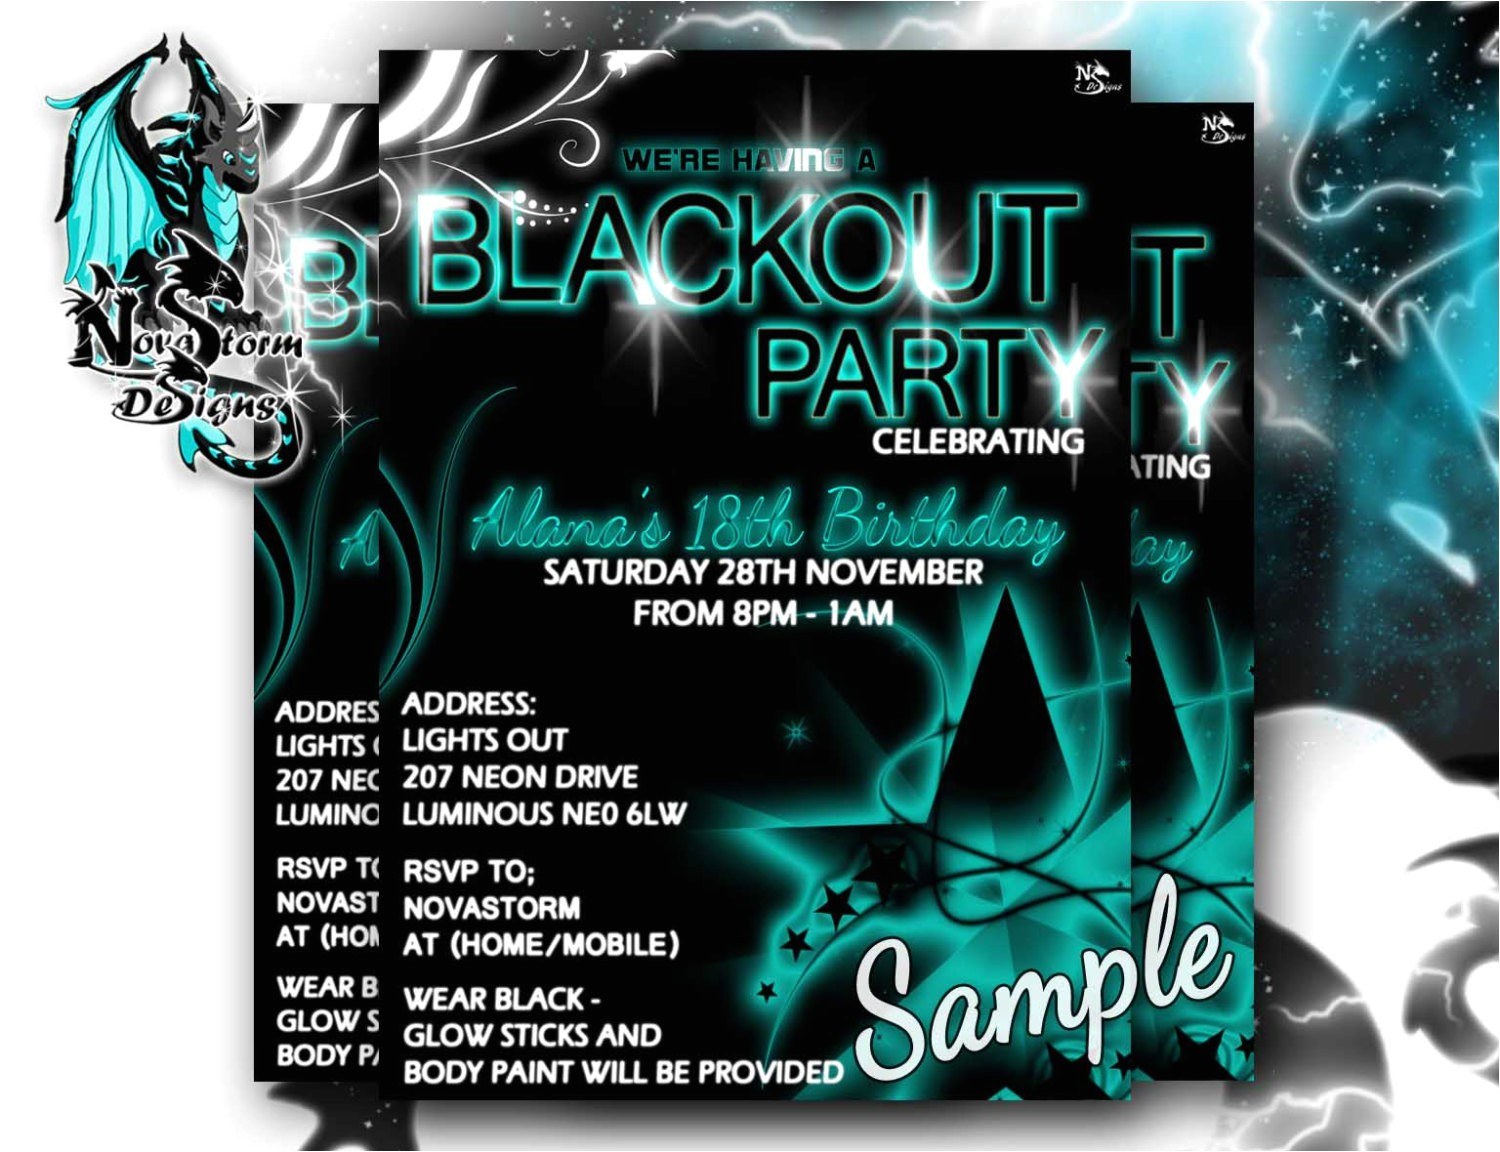 blackout party invitations uv glow dance